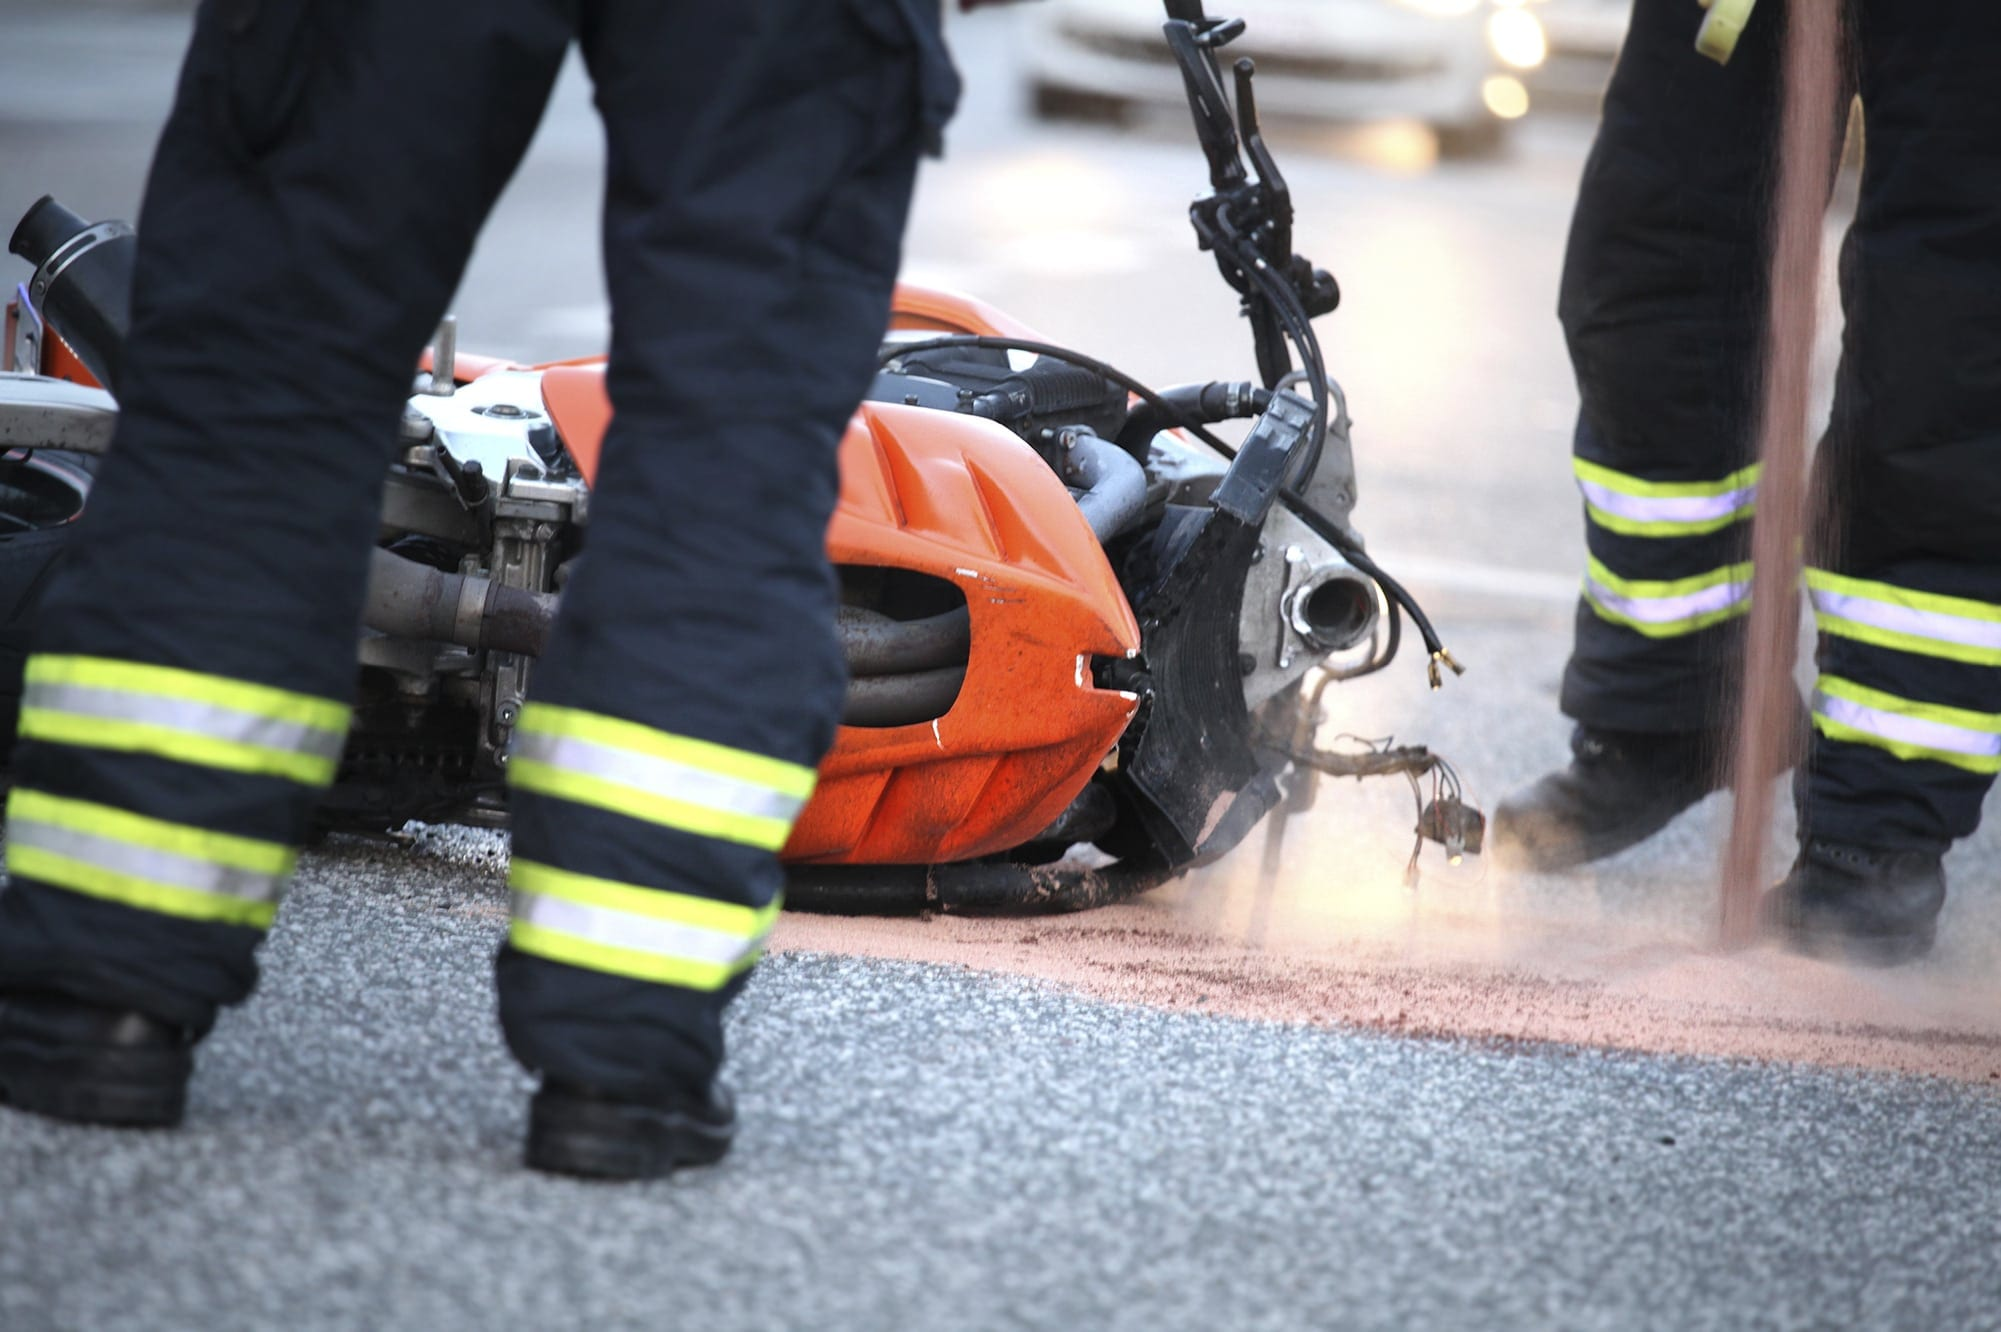 Firefighters Responding To Motorcycle Accident Stock Photo